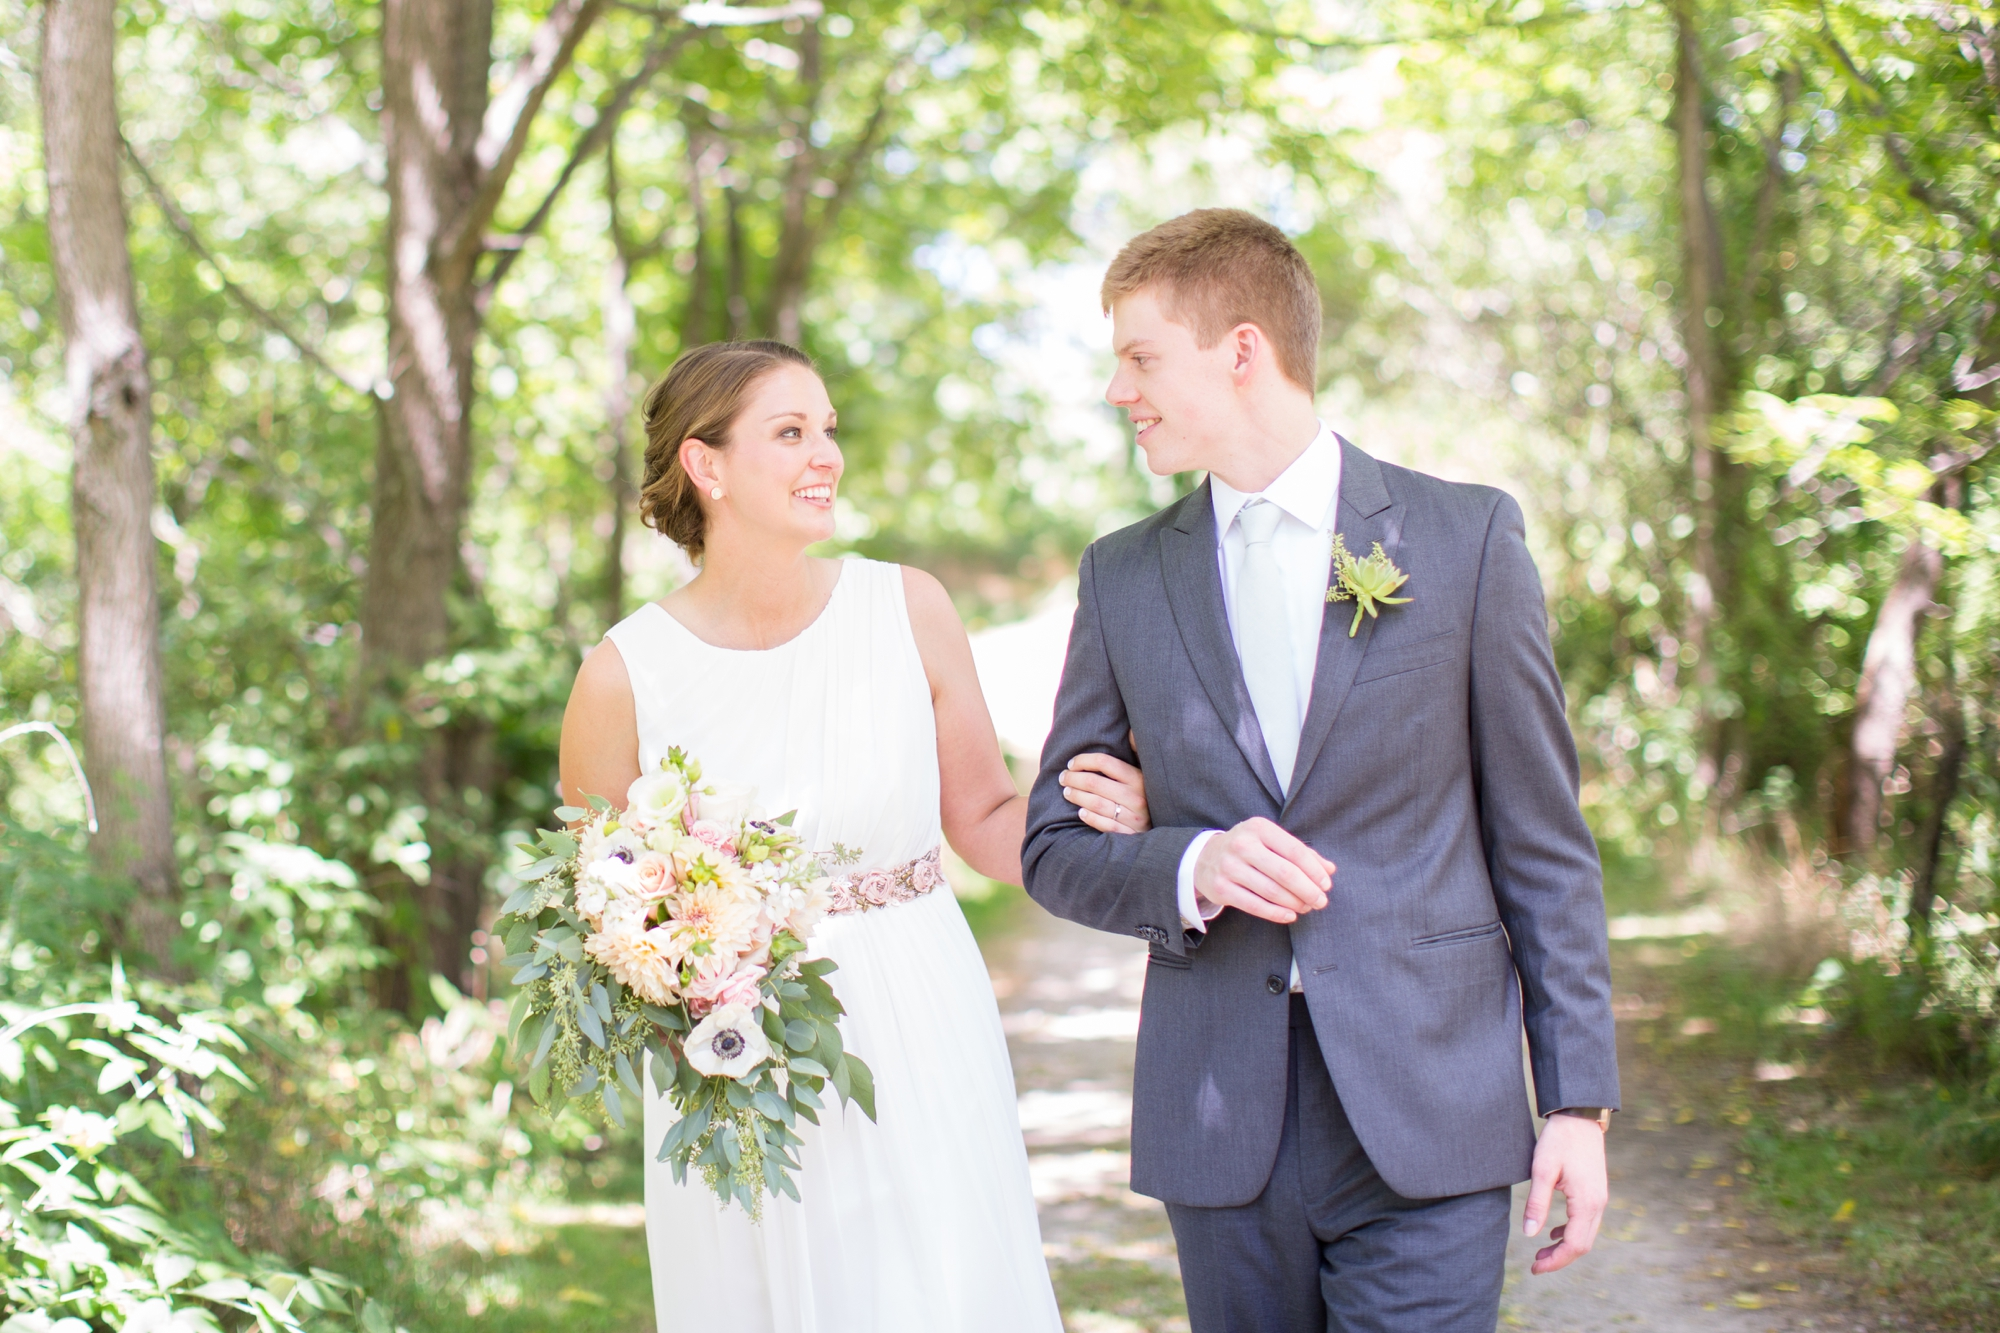 3-Tucker Wedding Bride & Groom Portraits-176_anna grace photography virginia wedding photographer sinkland farms.jpg